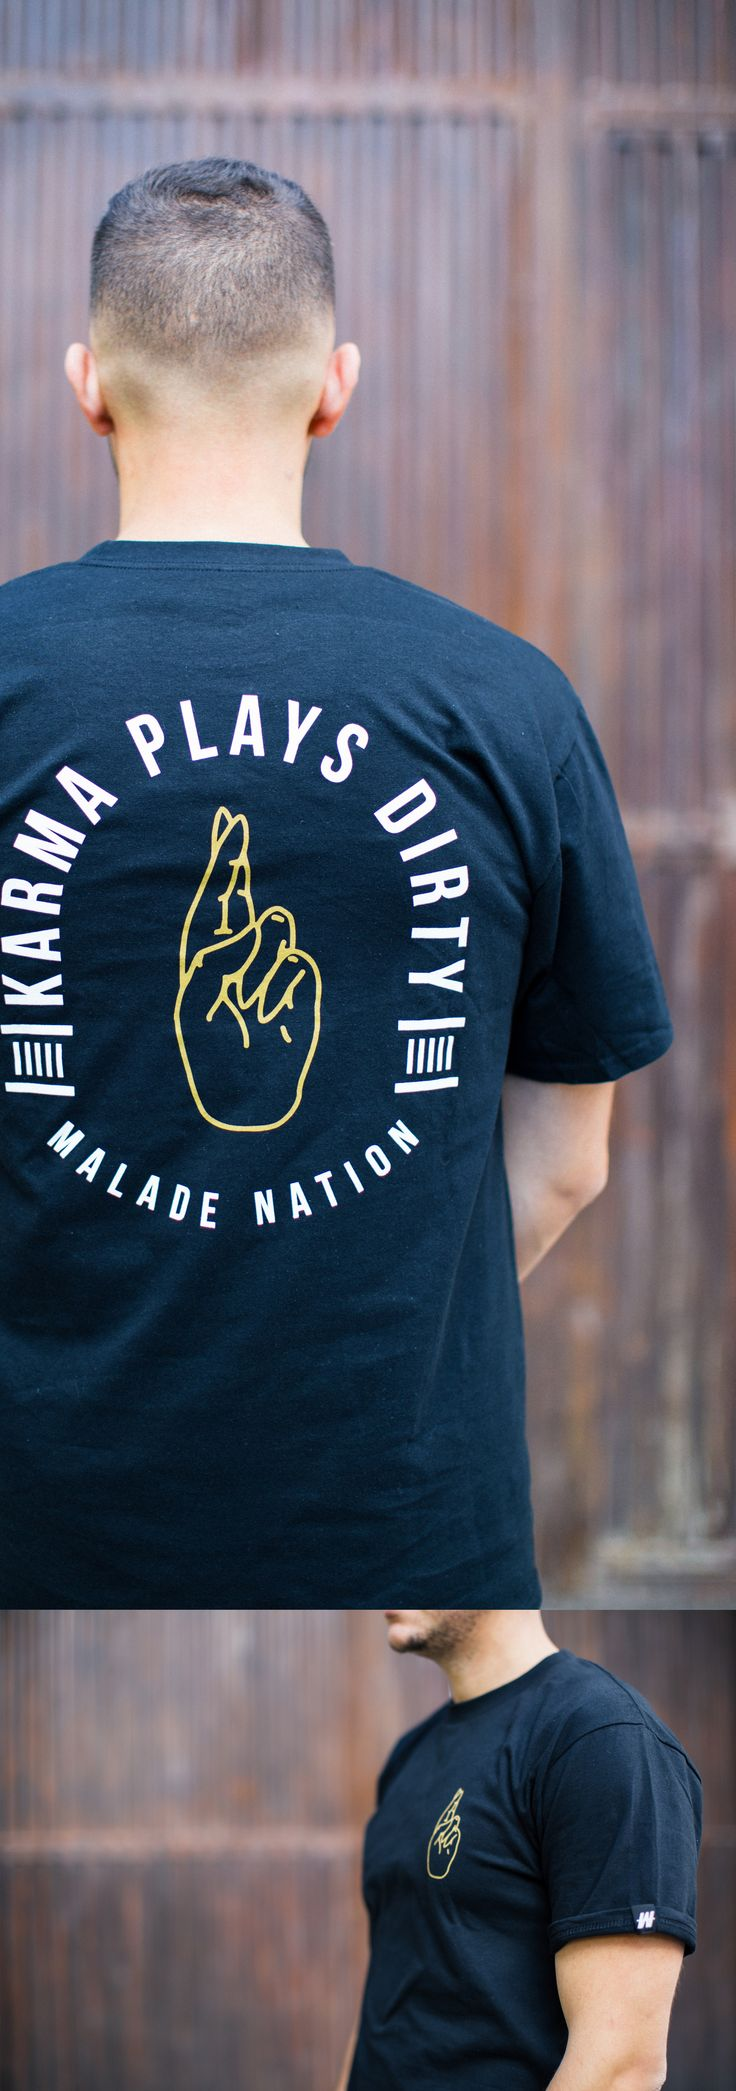 MALADE NATION in STORM SHOP ® Sneakers & Apparel Madrid. In Fresh we trust! #clothing #label